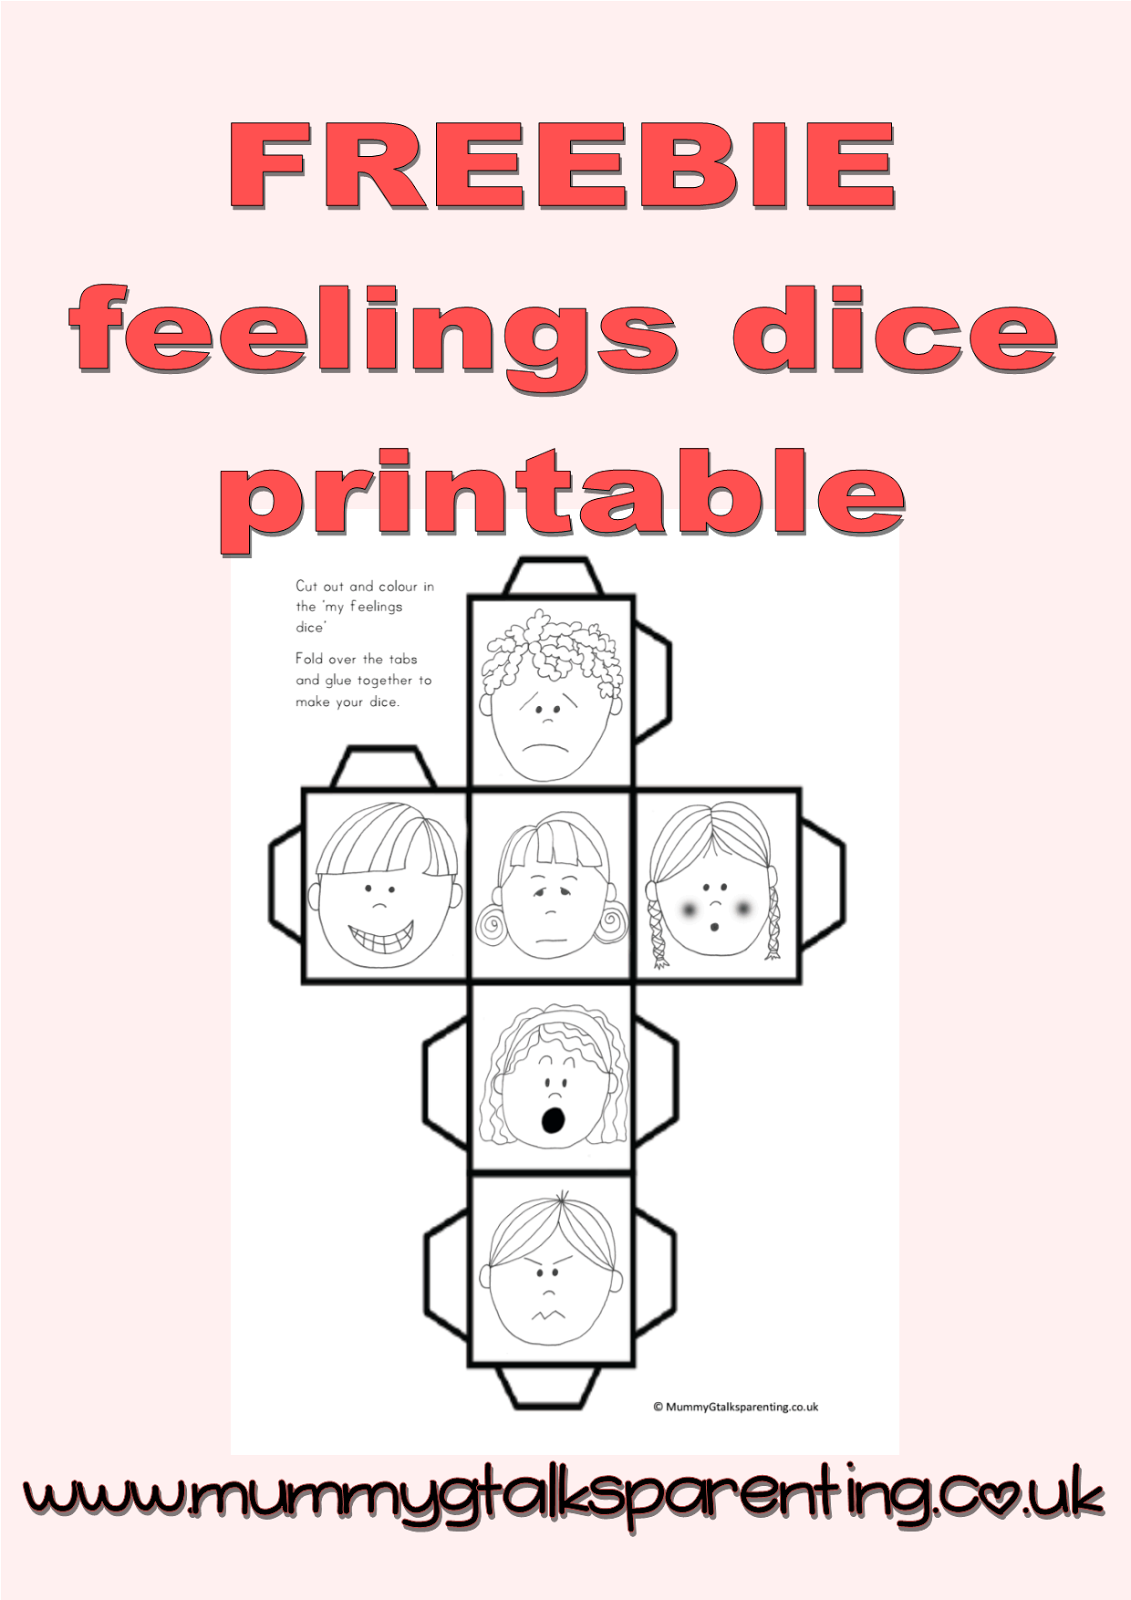 Freebie Feeling Dice Printable Freebie Preschool